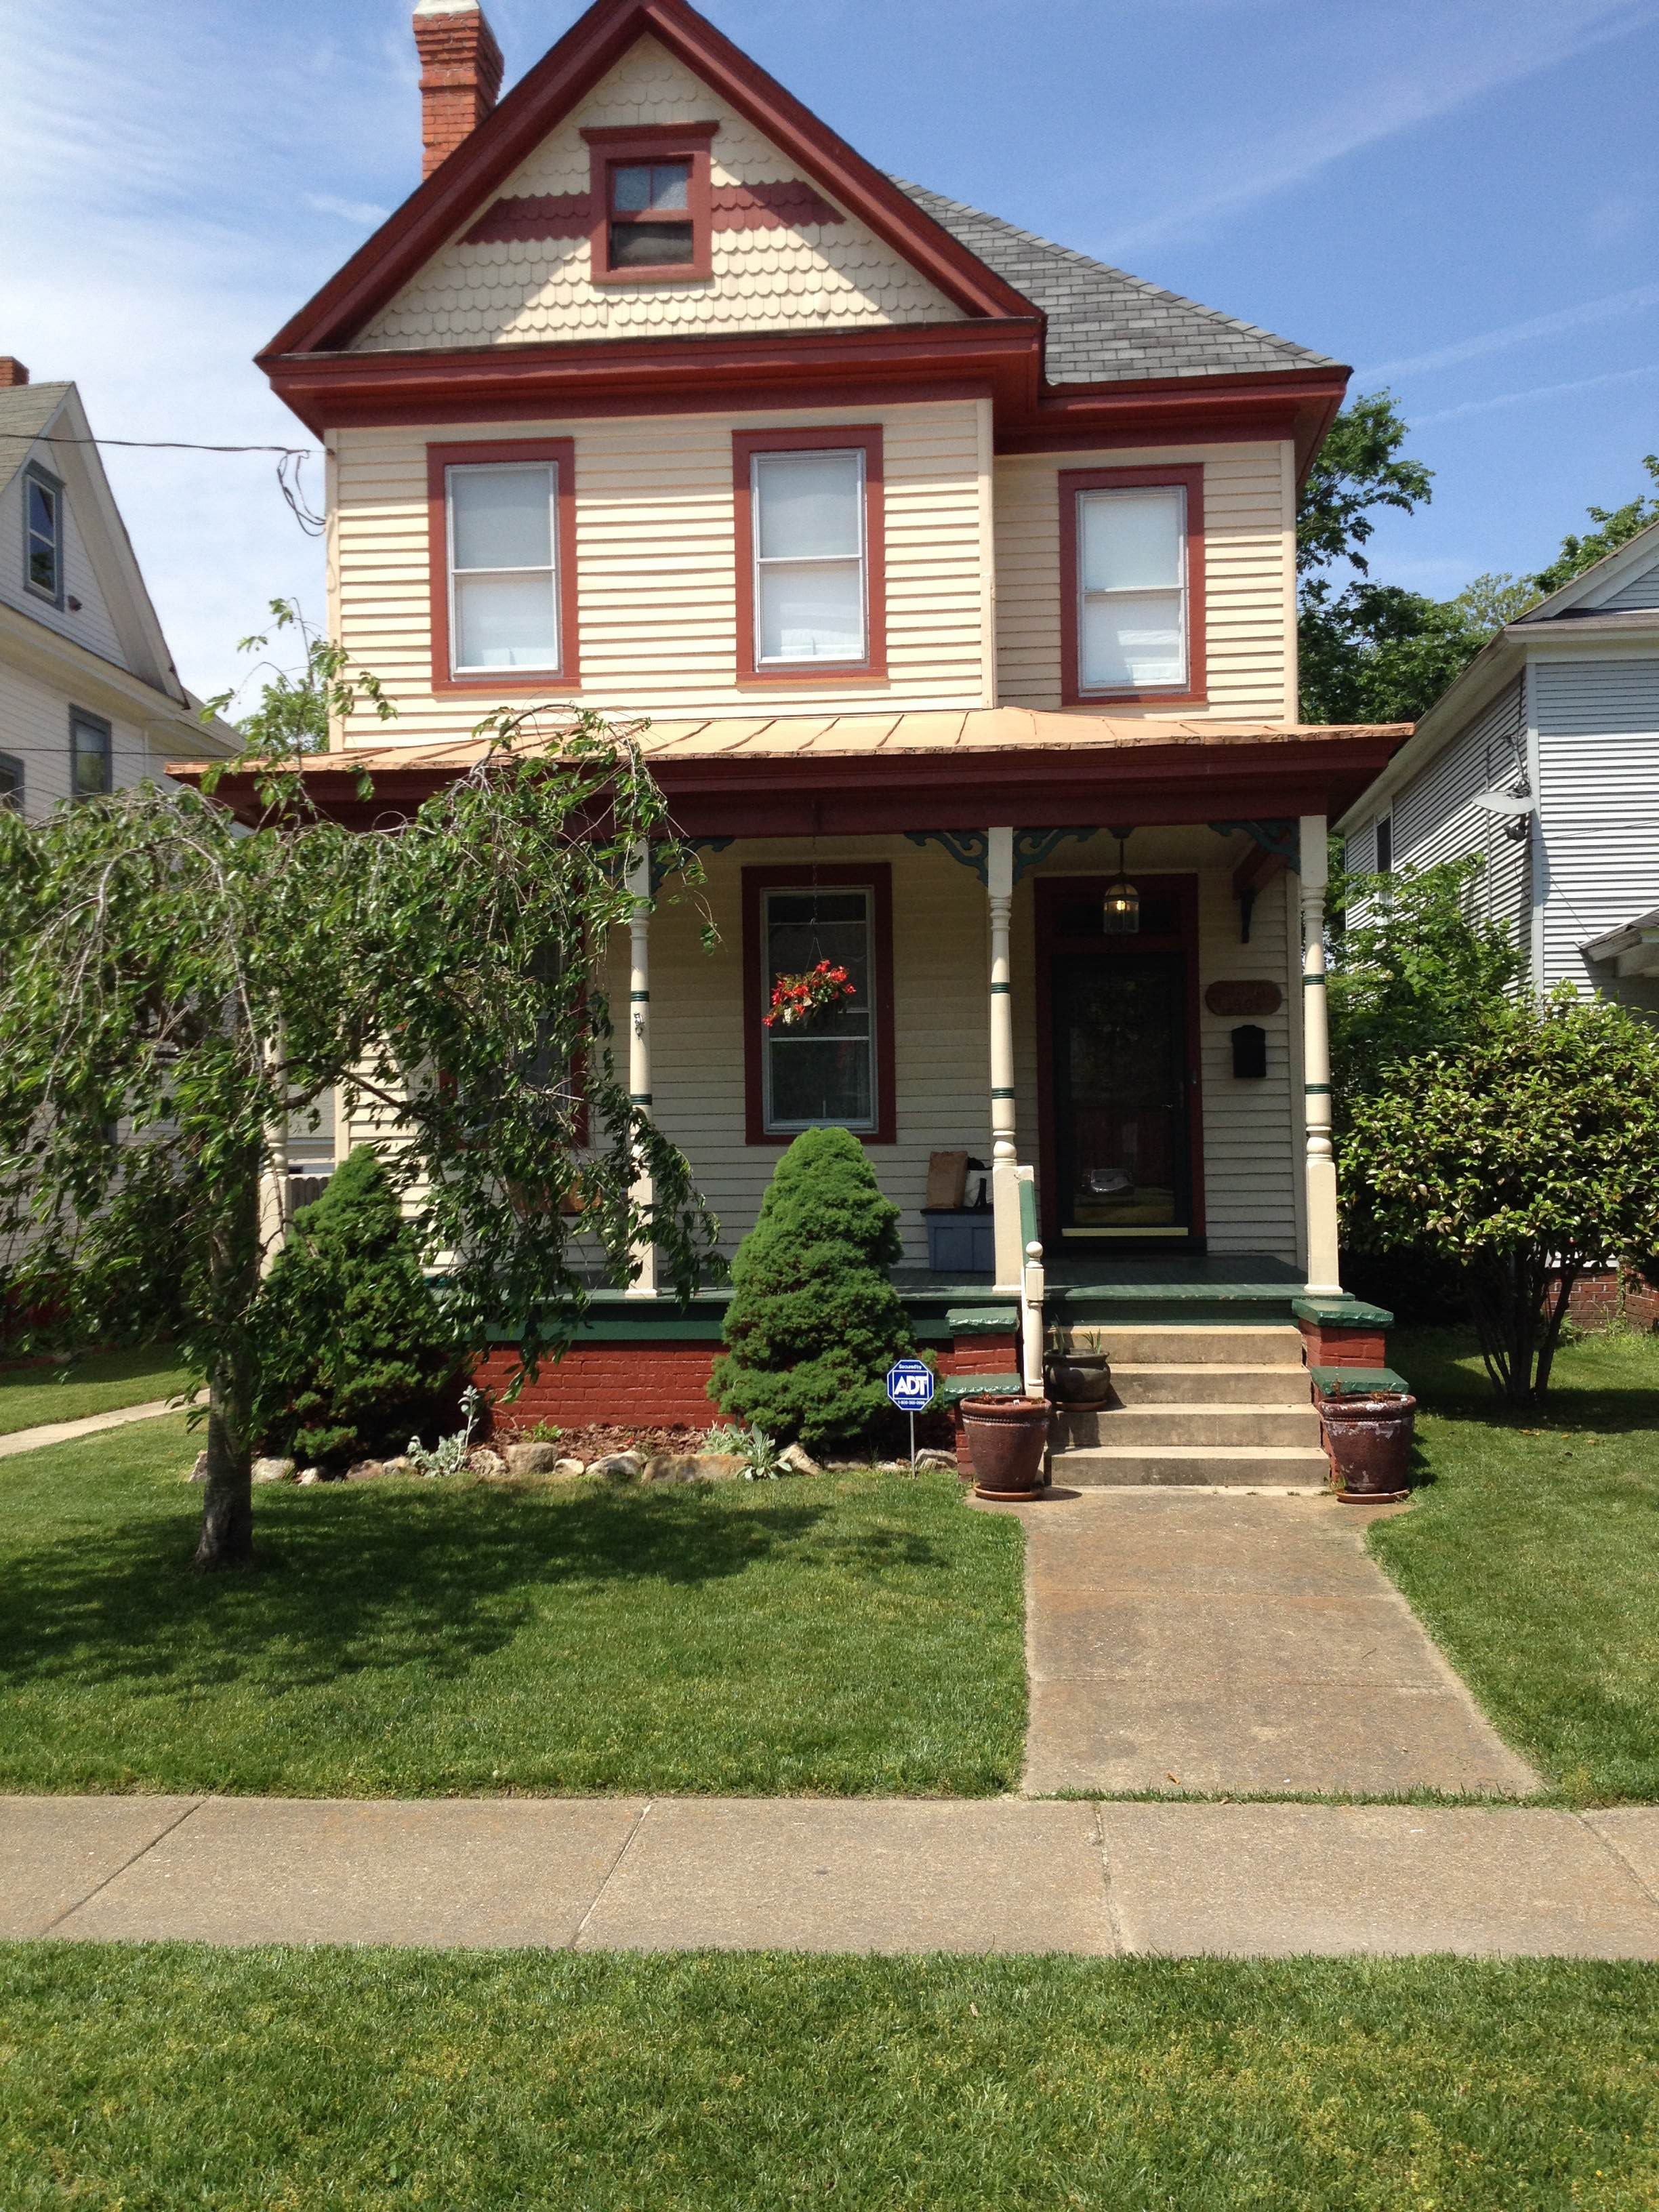 554 Mt Vernon Avenue: Sold!